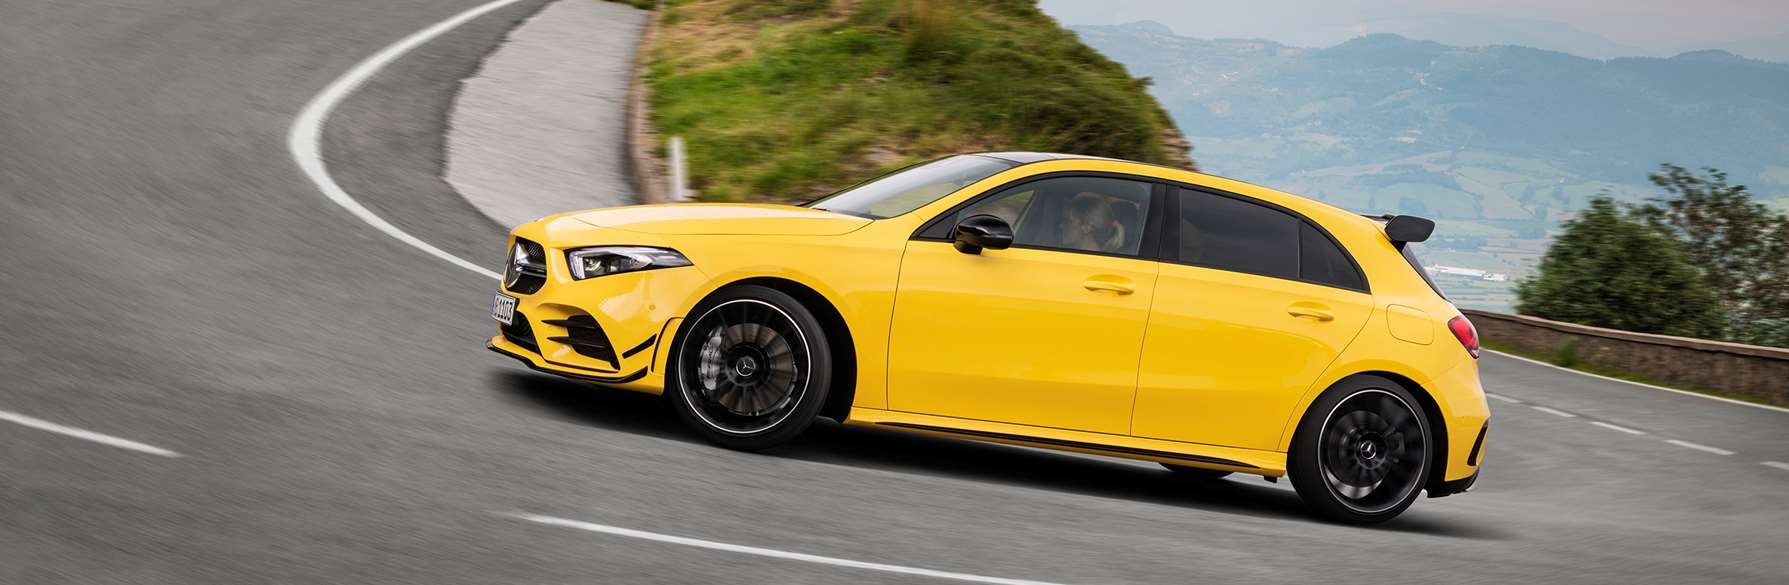 Here is the 300hp+ Merceds-AMG A35